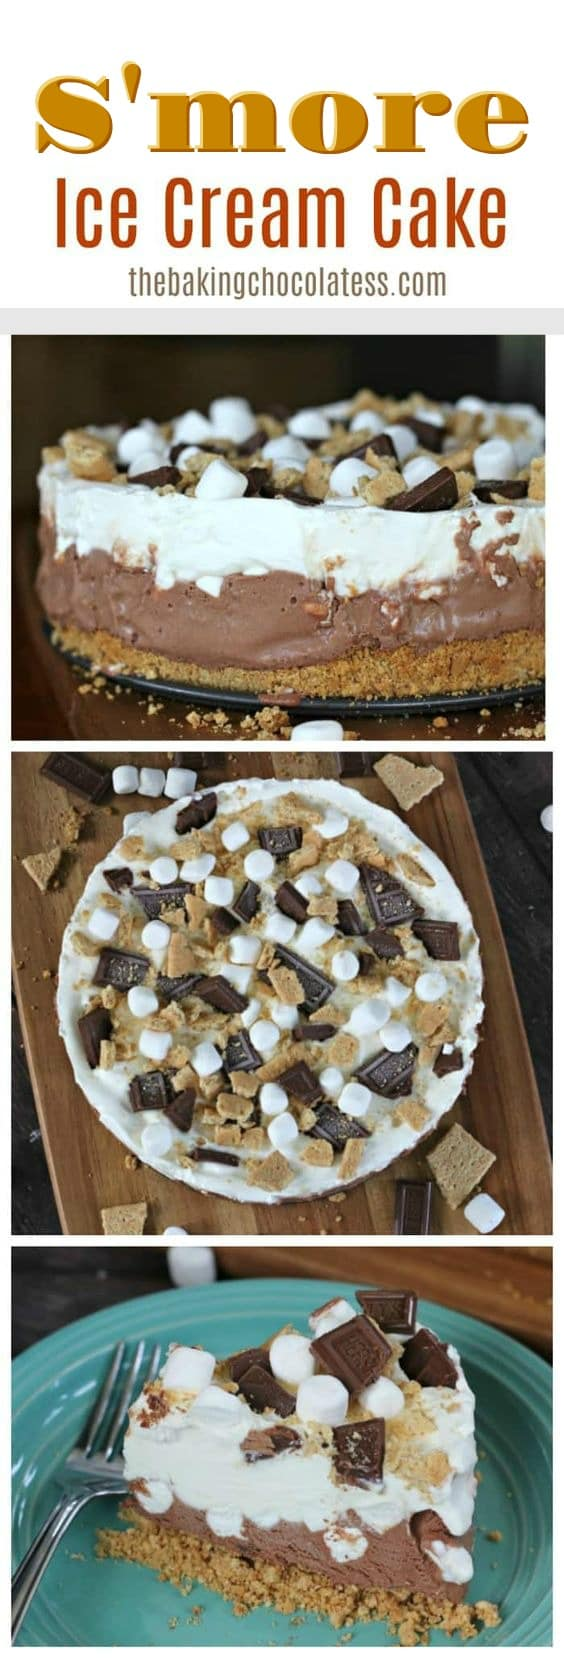 Have S'more fun devouring delicious bitefuls of this wonderful S'more Ice Cream Cake packed full of marshmallows, chocolate ice cream, whipped cream, Hershey's Bar Bits and graham crackers, which makes it one of the best summer treats of Summer!